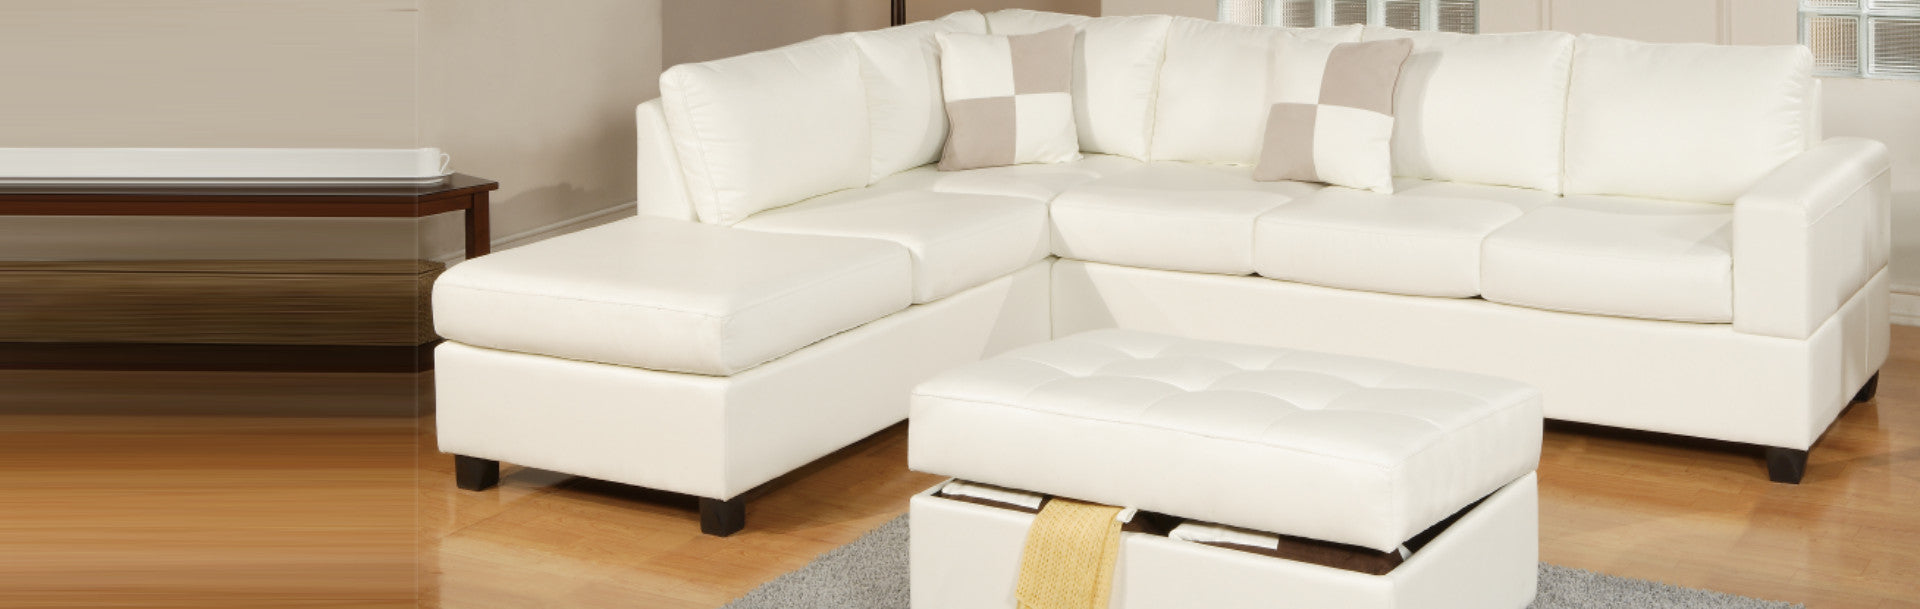 Collections Sofa Bed Slide Banner-5